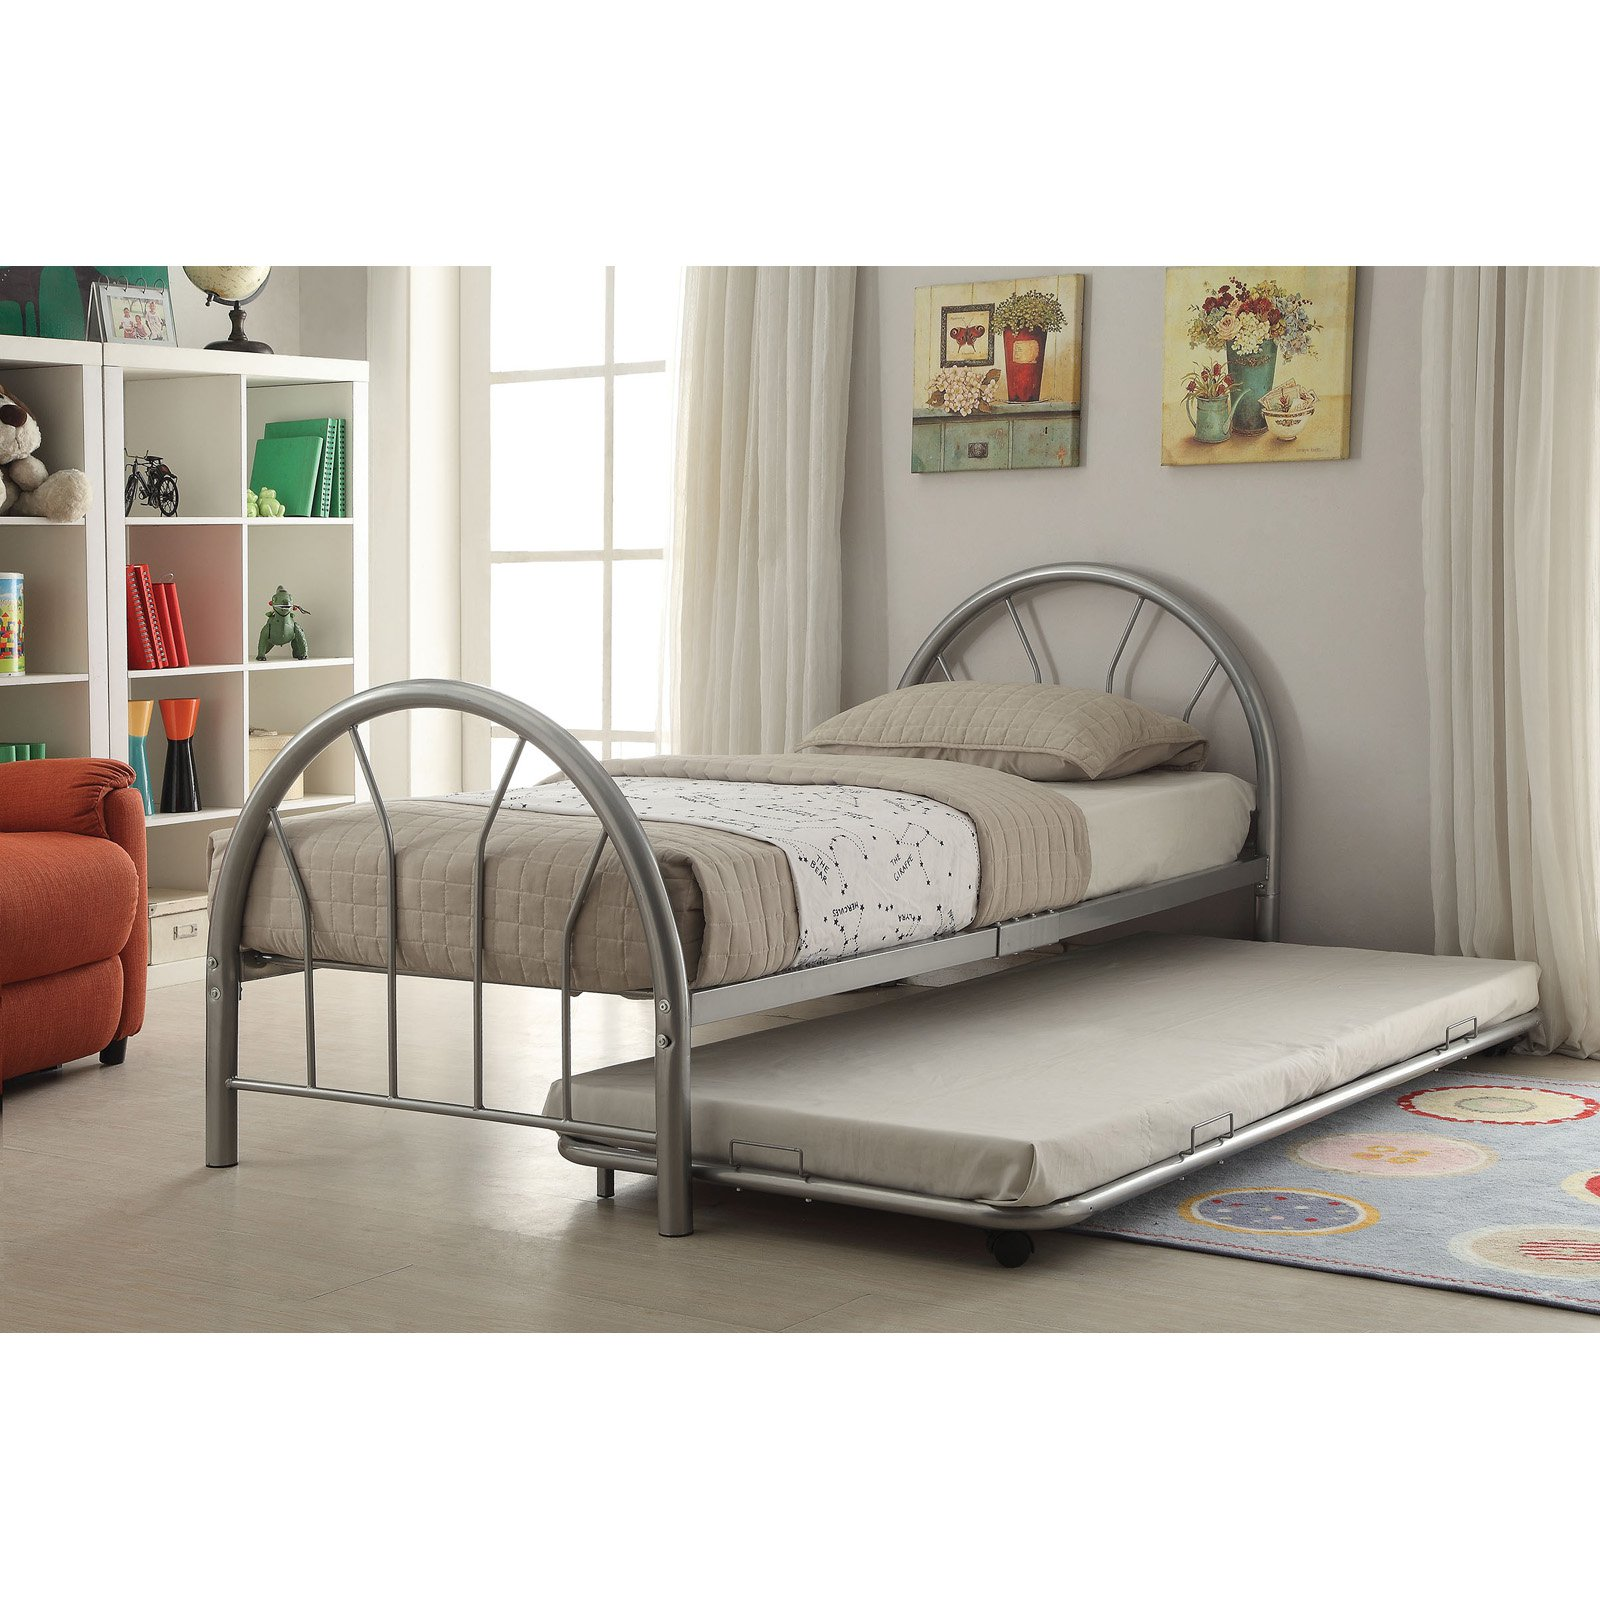 Silhouette Twin Bed With Trundle Silver Walmart Com